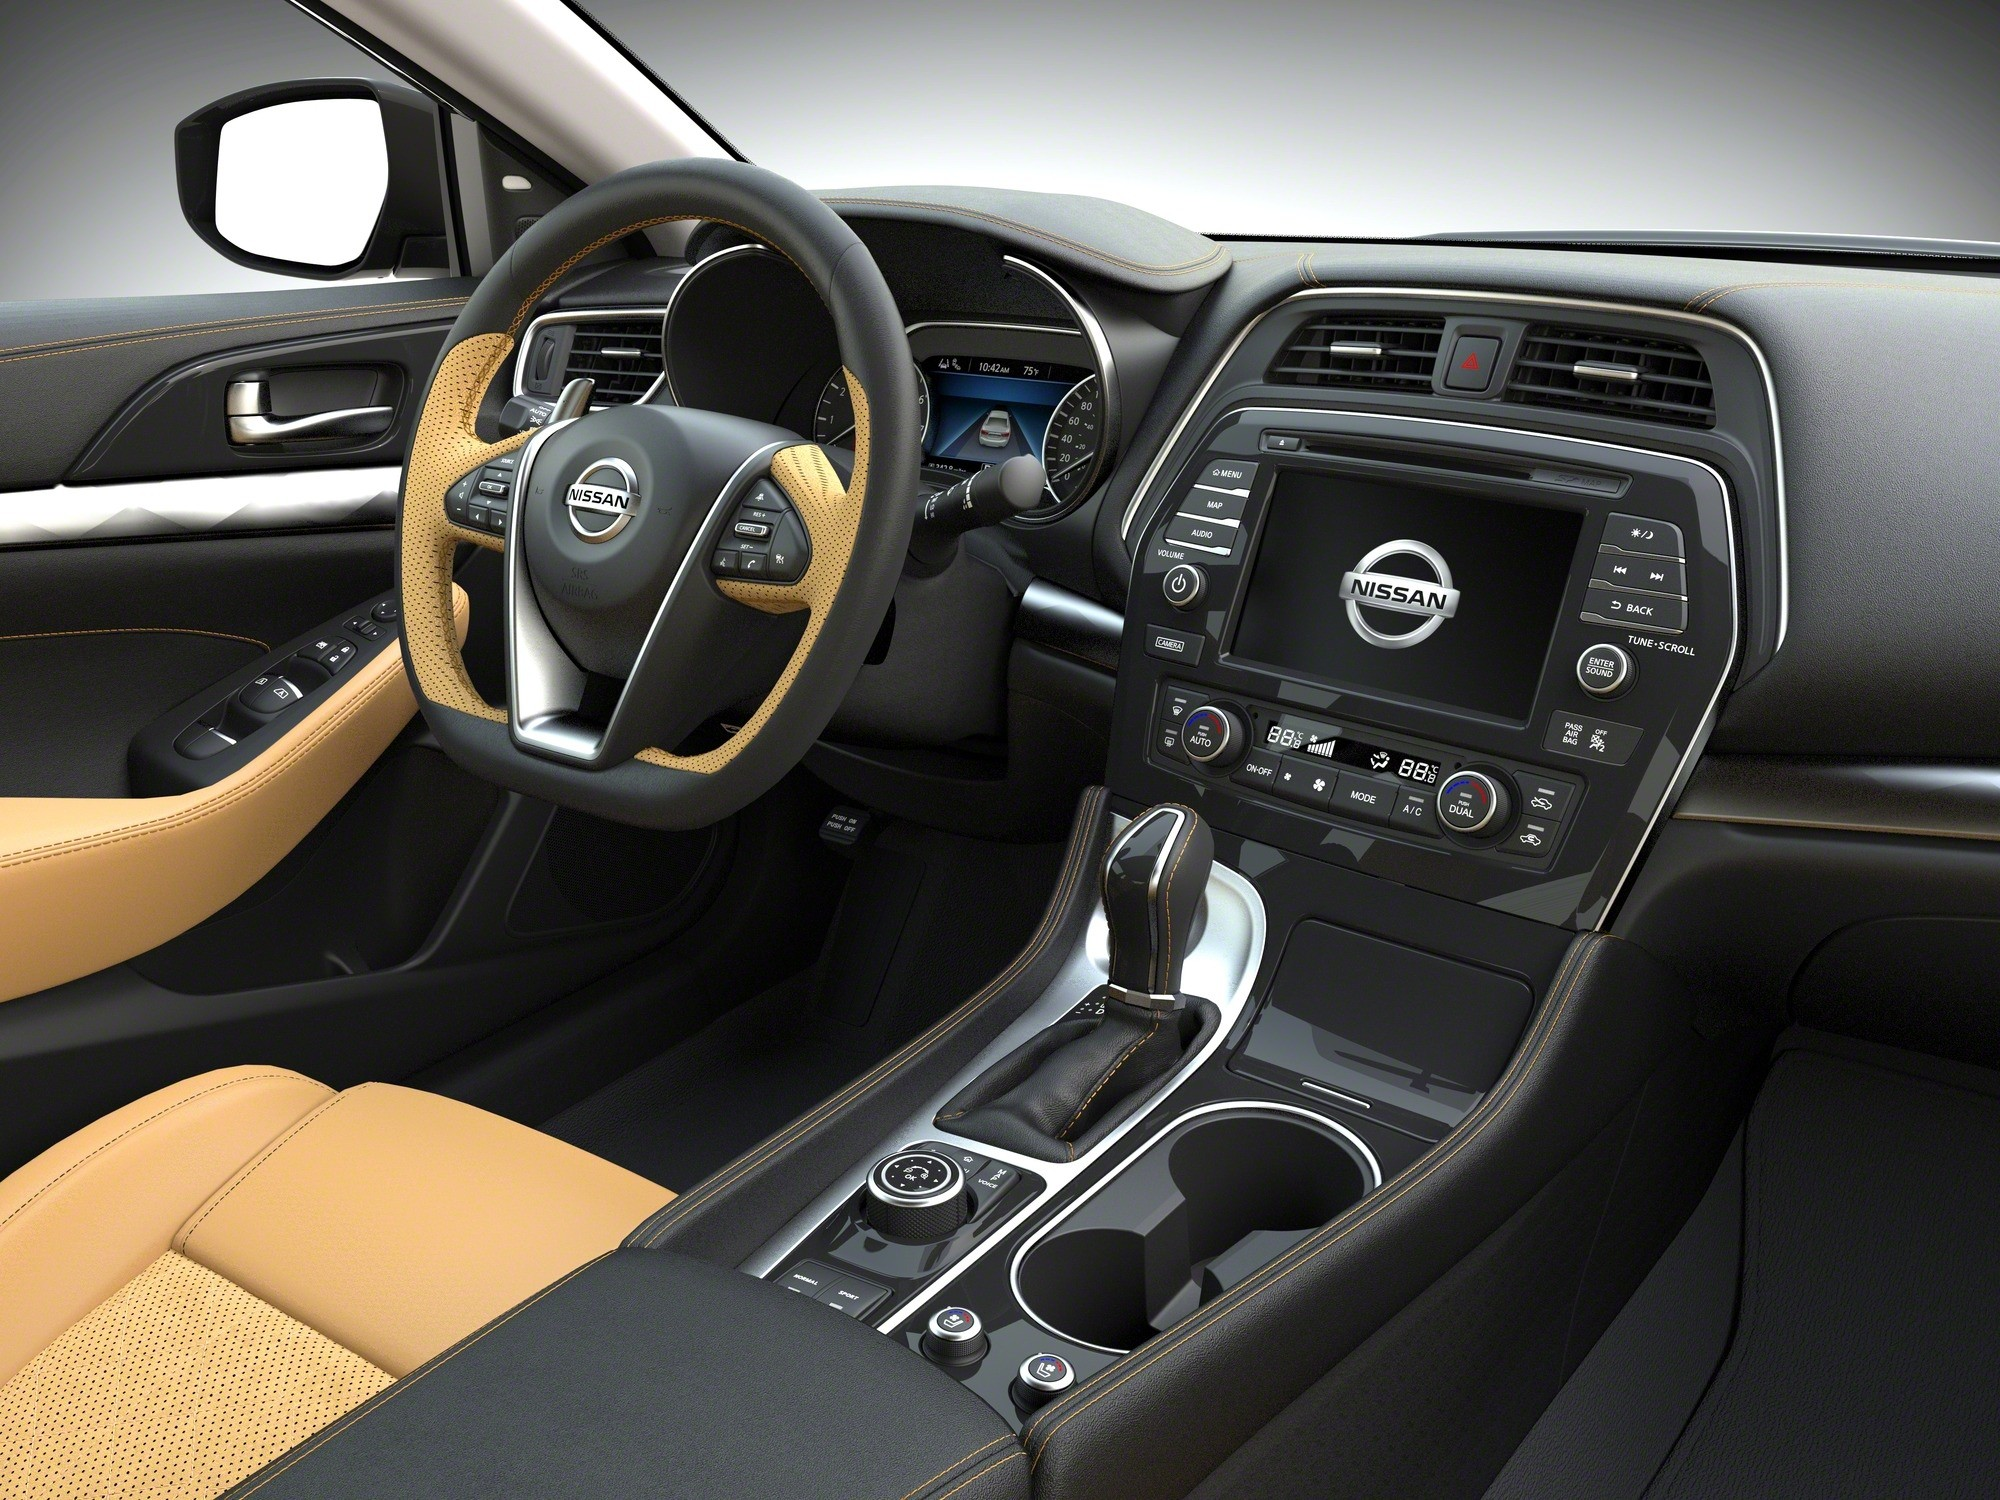 2018 Nissan Maxima Boasts Small Updates Including Android